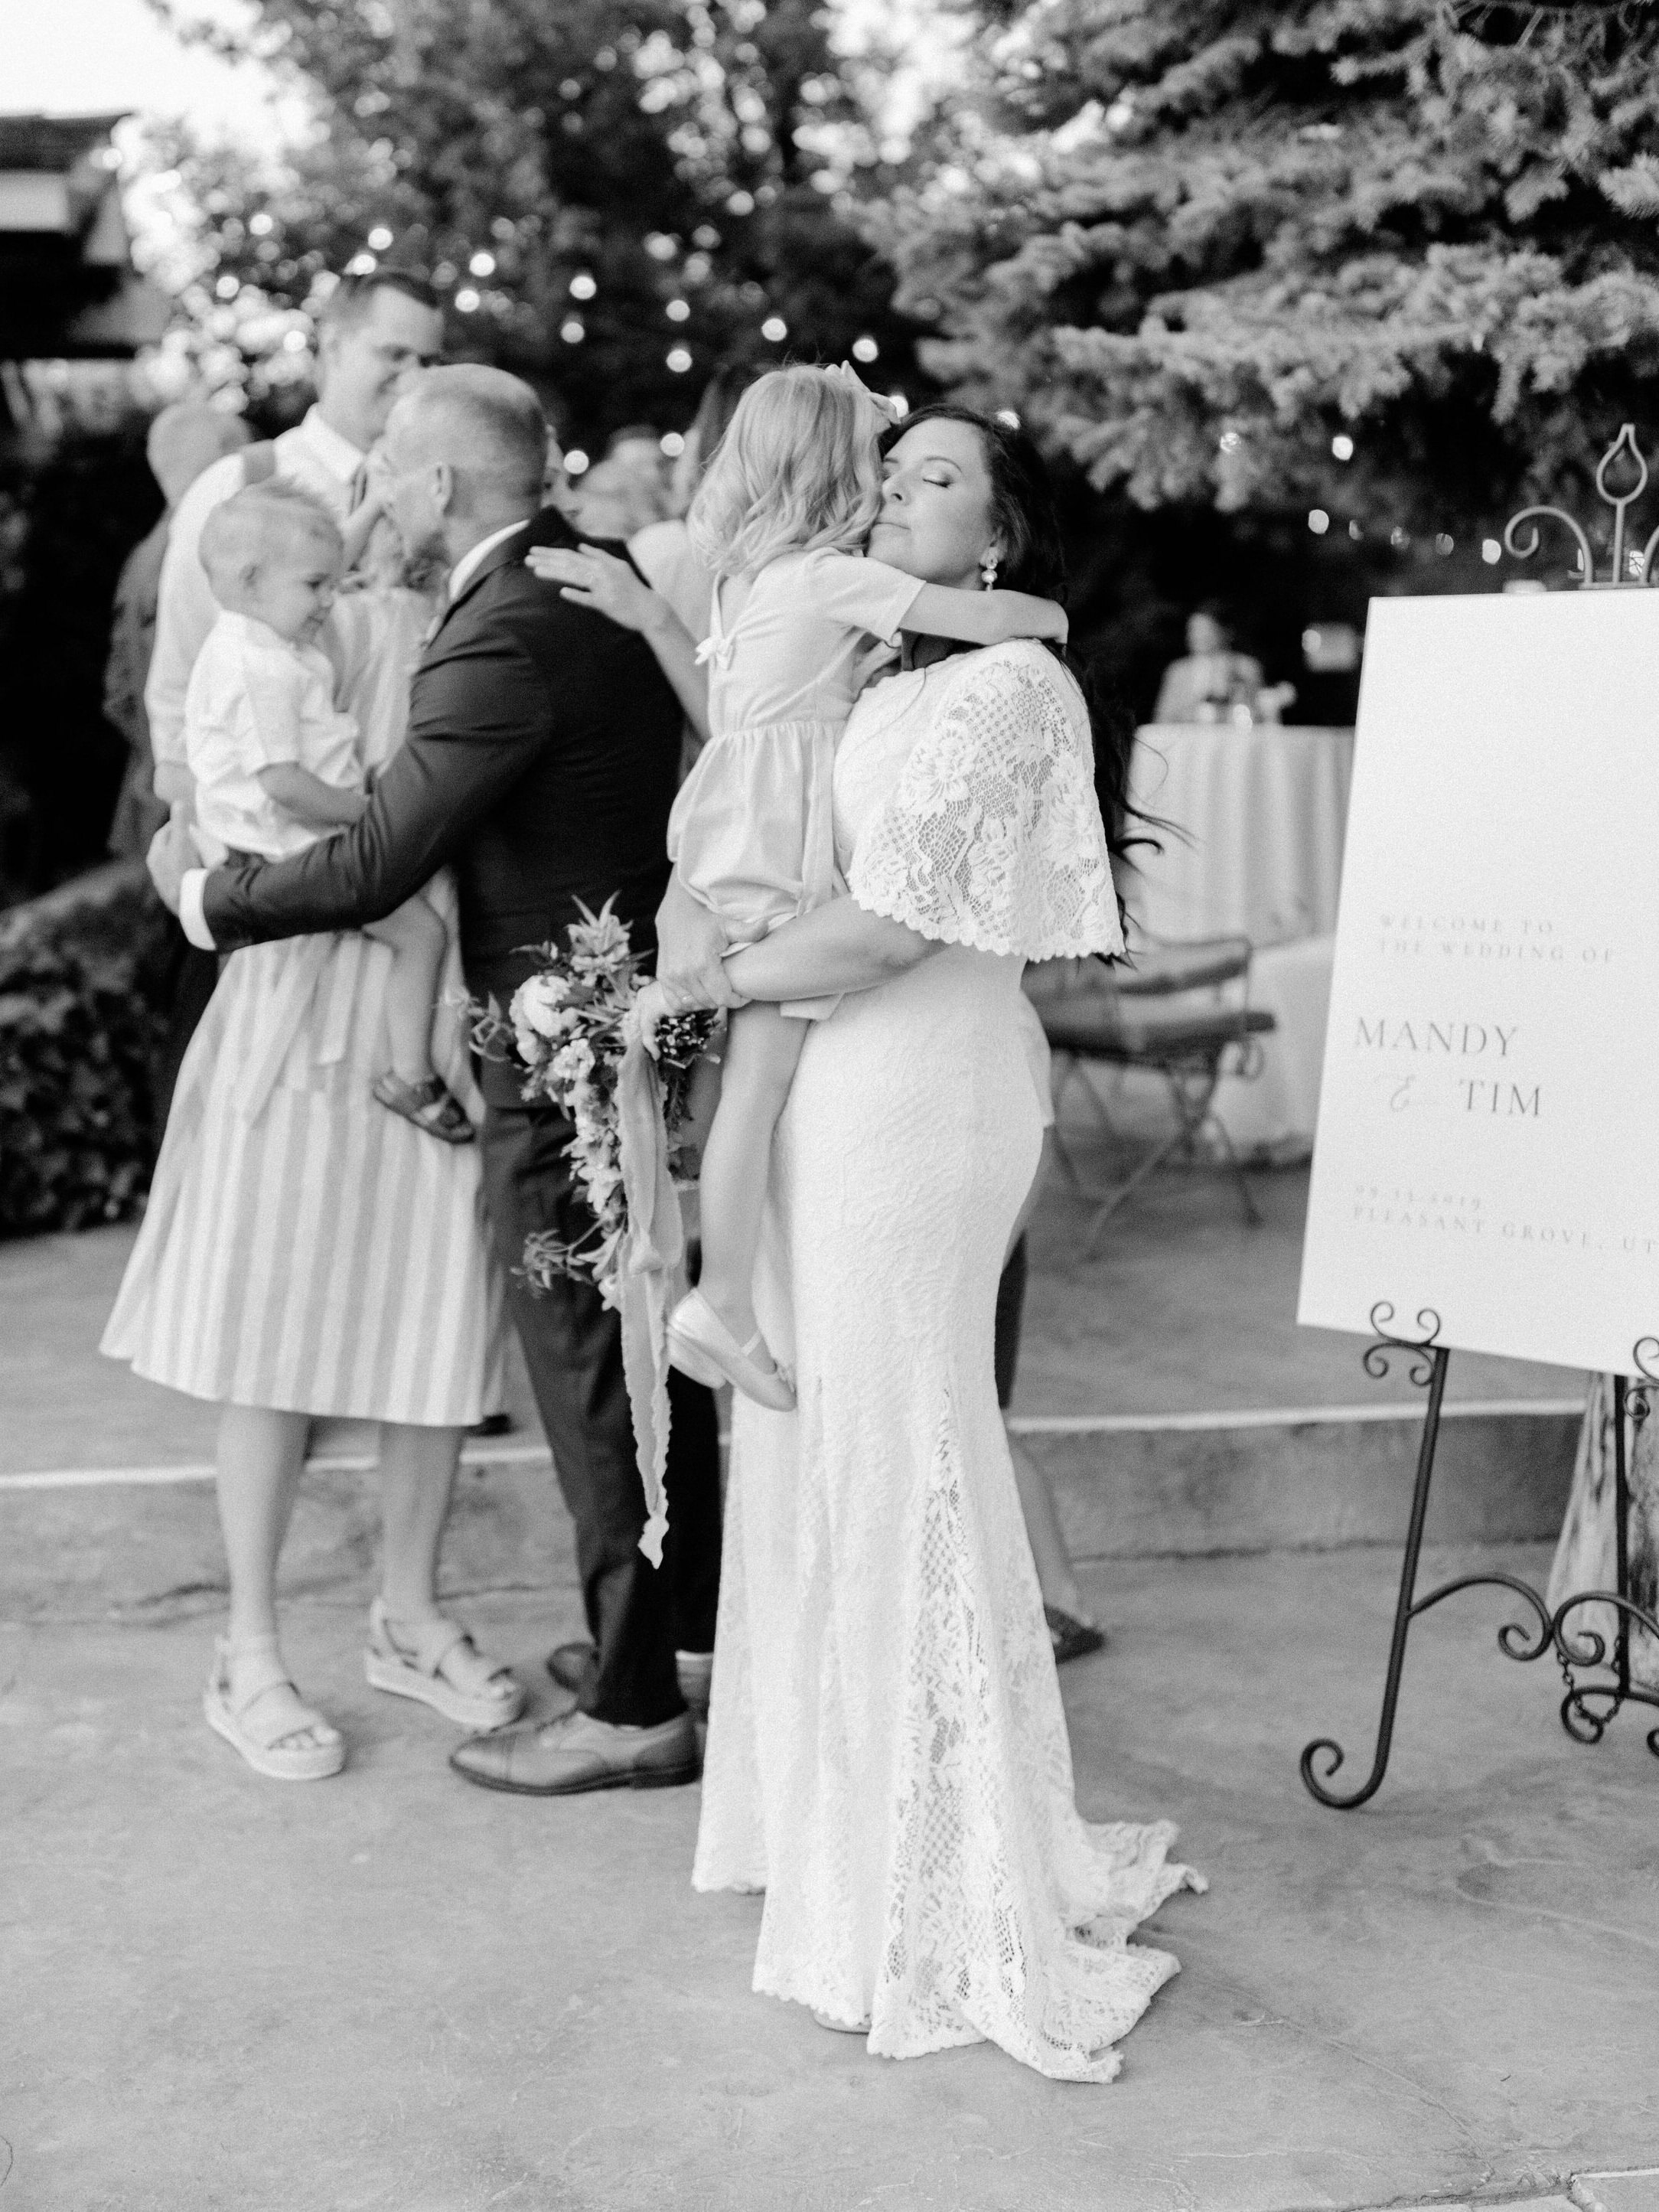 The sweetest family embrace at this intimate al fresco wedding